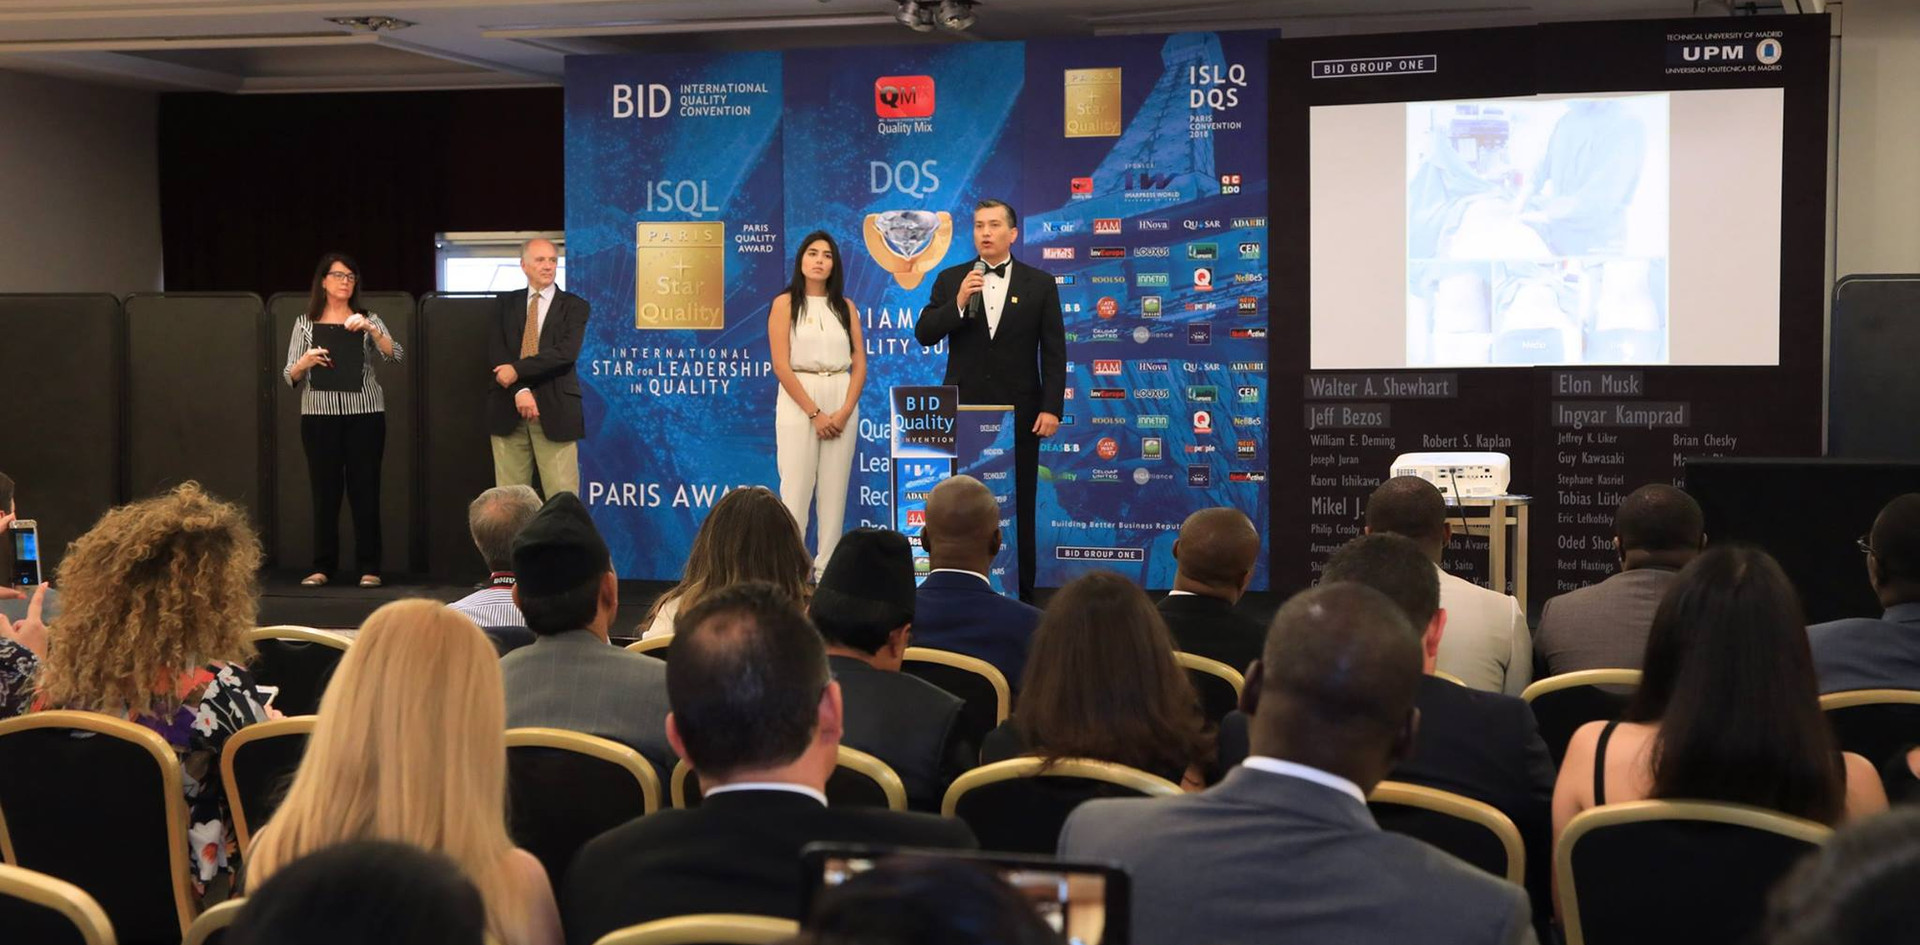 Galardón BID International Star for Leadership in Quality en la categoría ORO